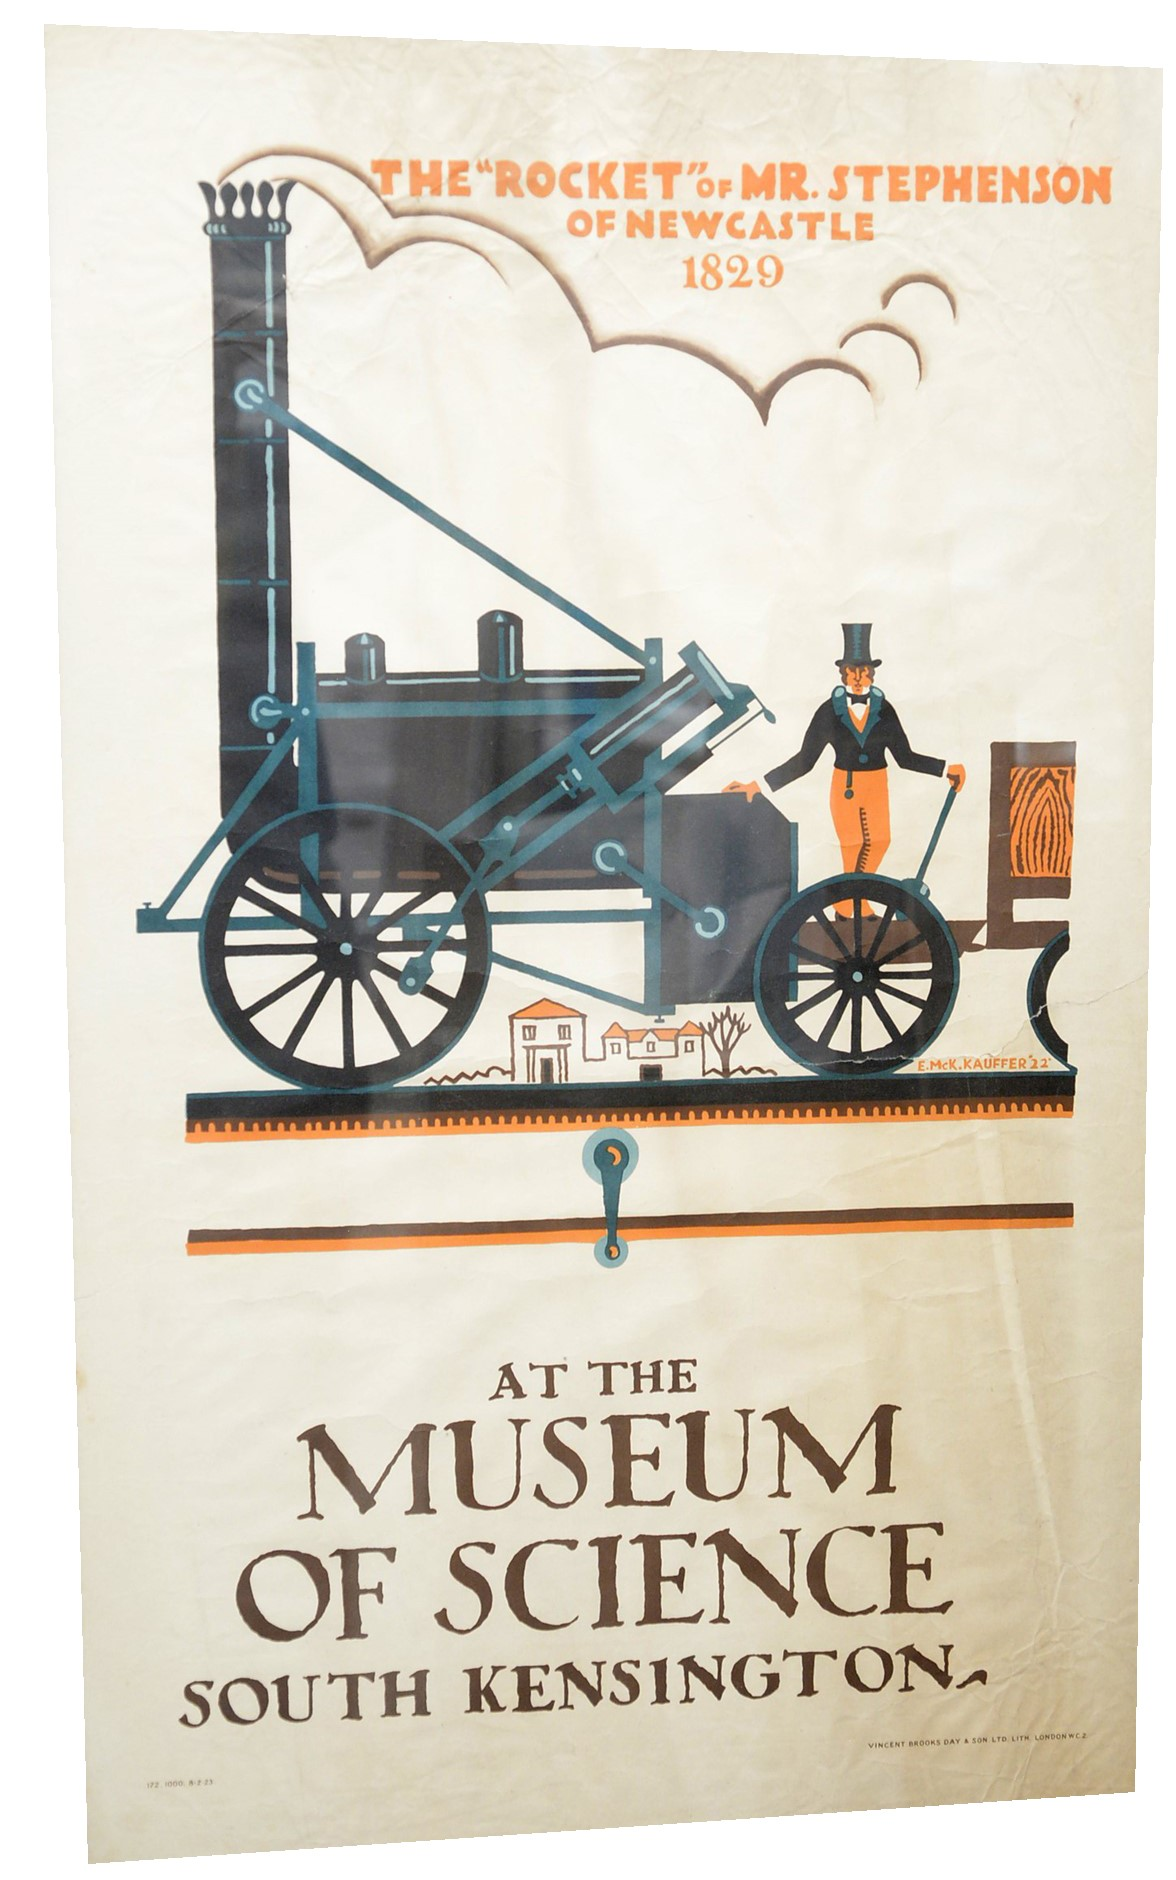 An early 20th Century railway poster featuring Stephenson's 'Rocket' locomotive,